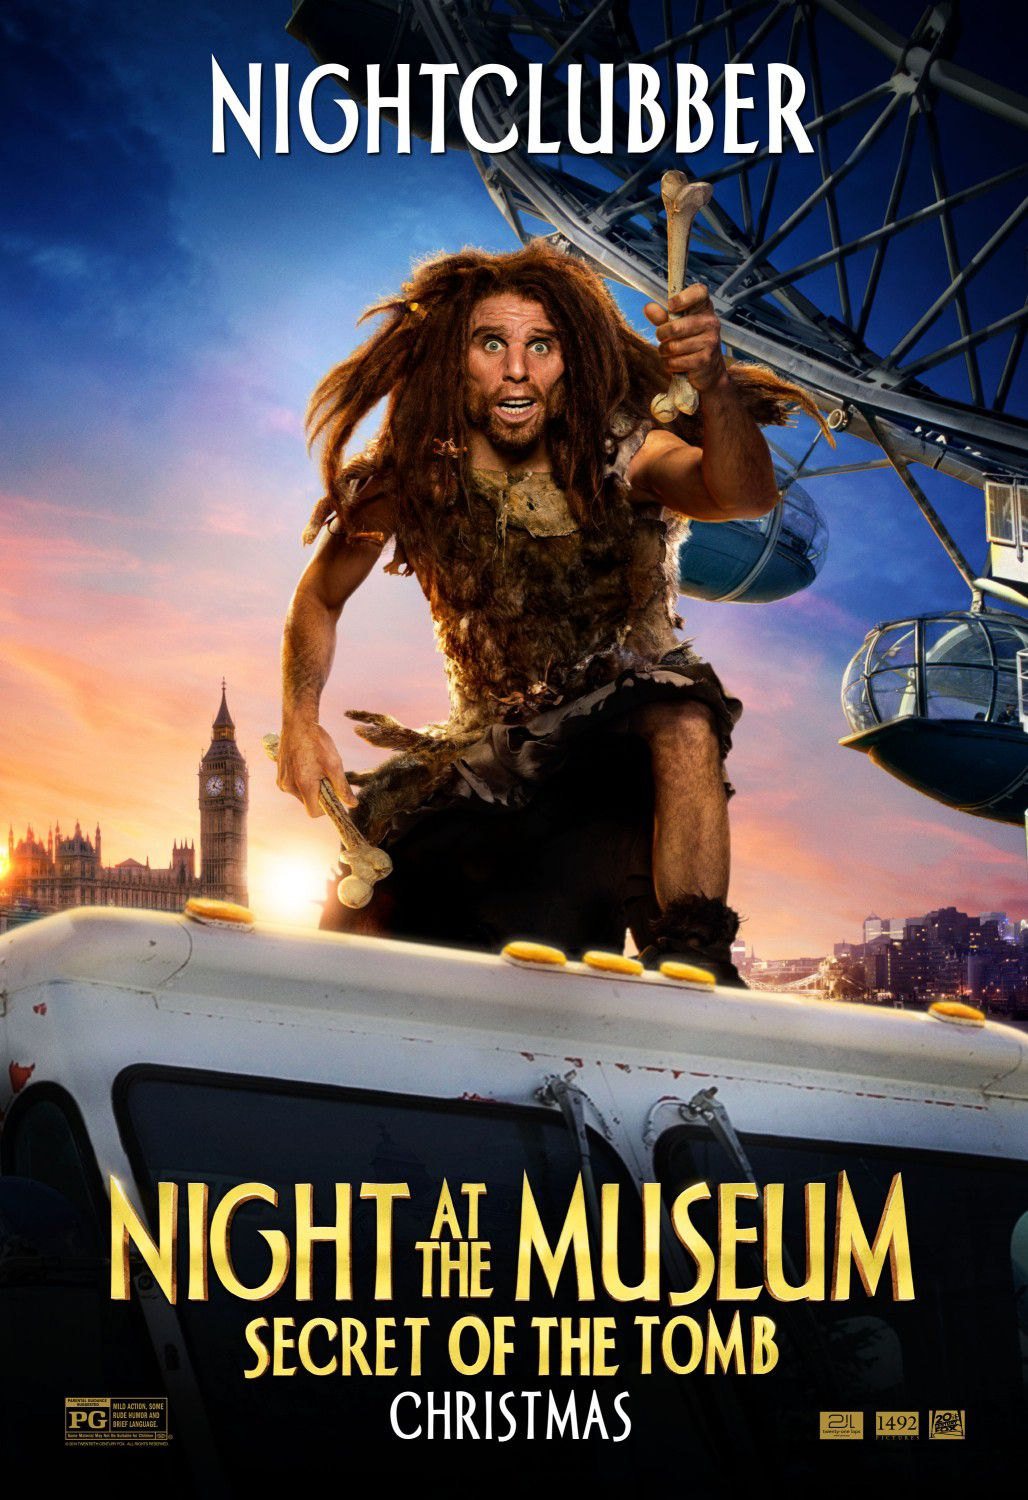 Una Notte al Museo 3 - Night at the Museum 3 - Secret of the Tomb - poster - night clubber - Ben Stiller